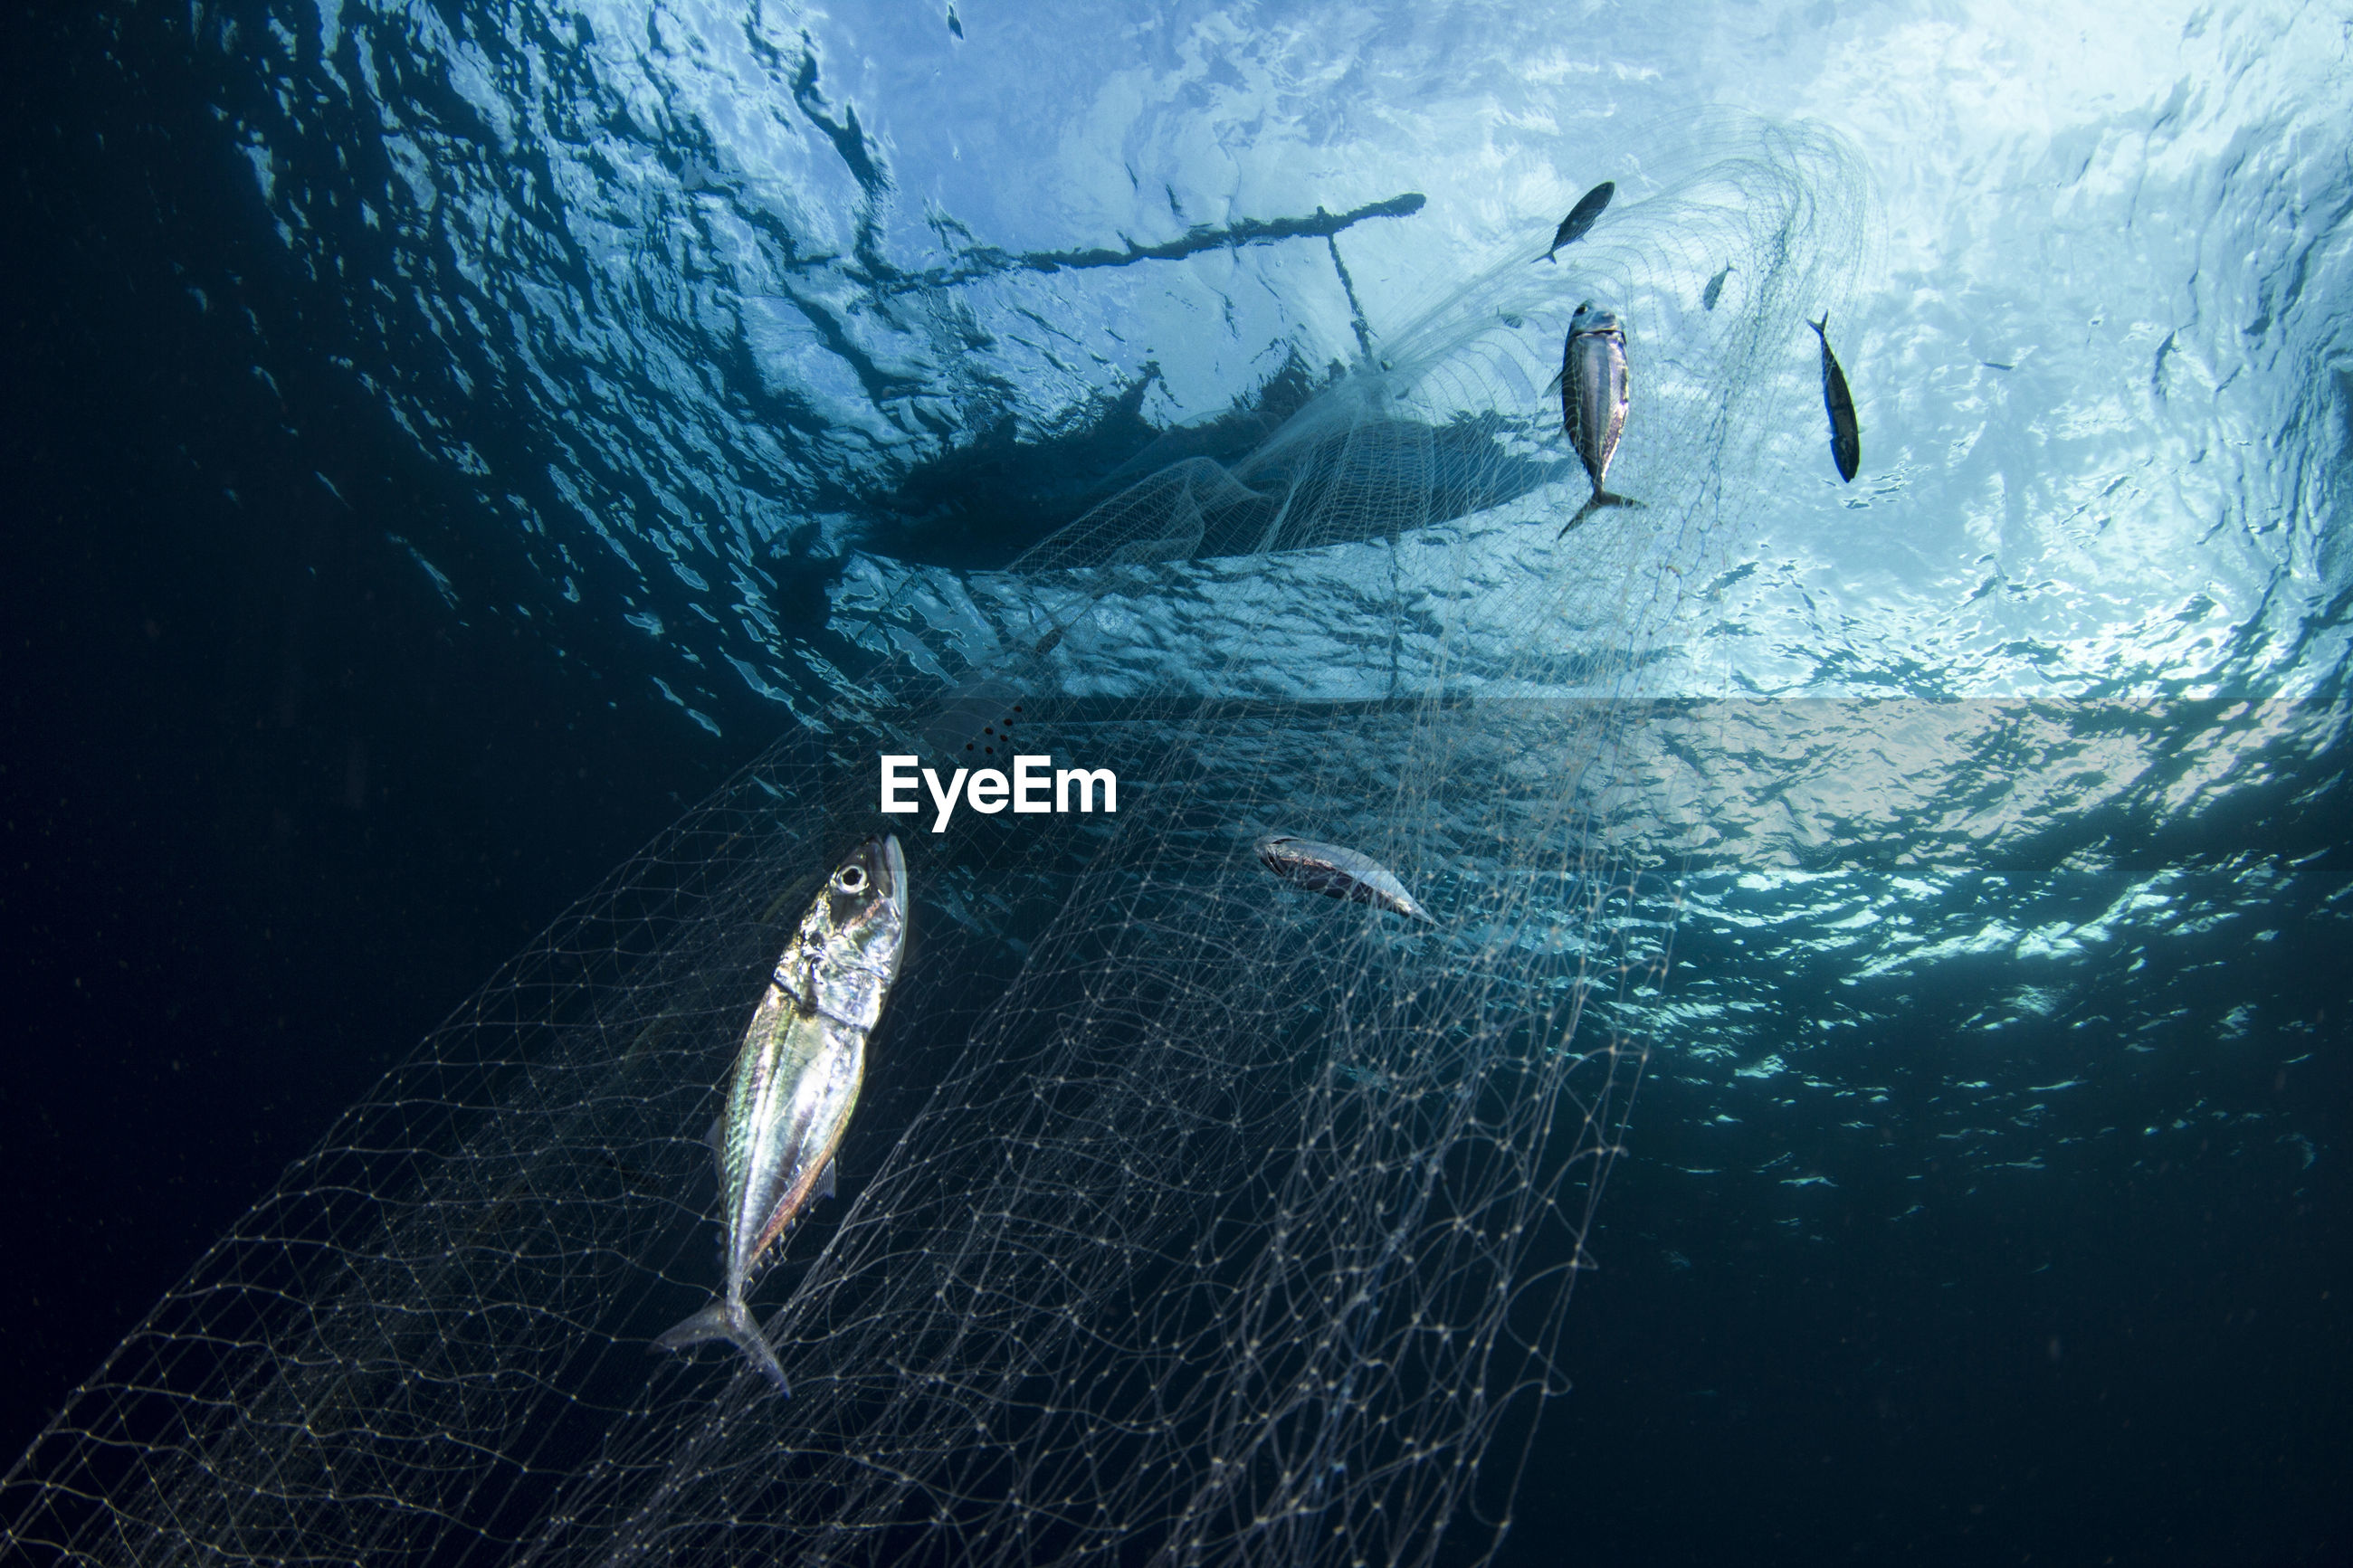 Low angle view of fish in fishing net underwater